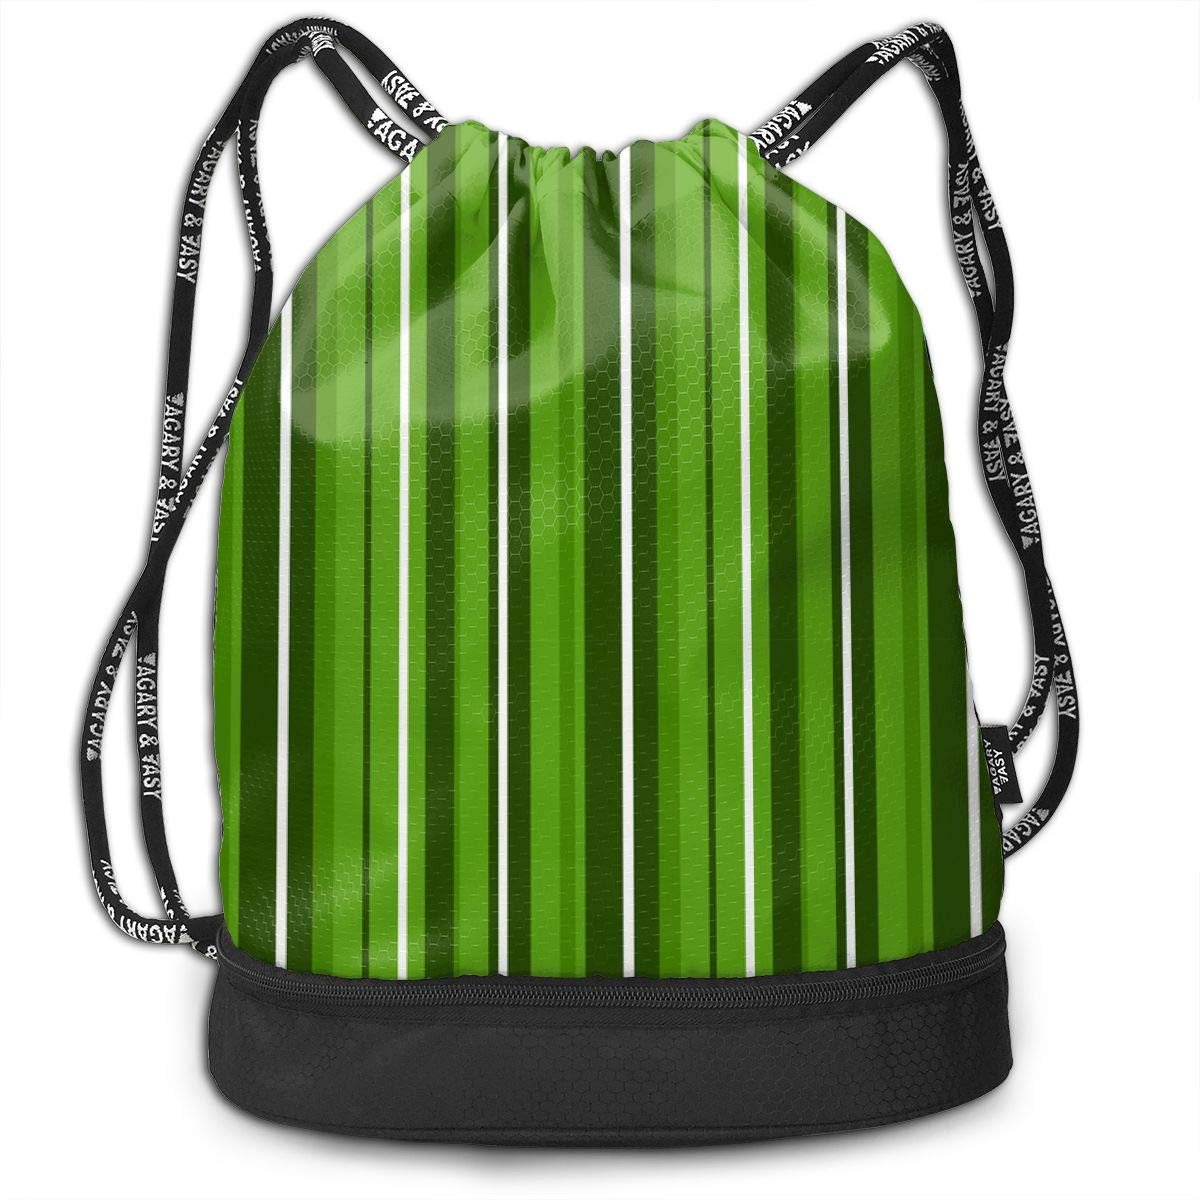 Candy Cane Stripes Green White Drawstring Backpack Sports Athletic Gym Cinch Sack String Storage Bags for Hiking Travel Beach